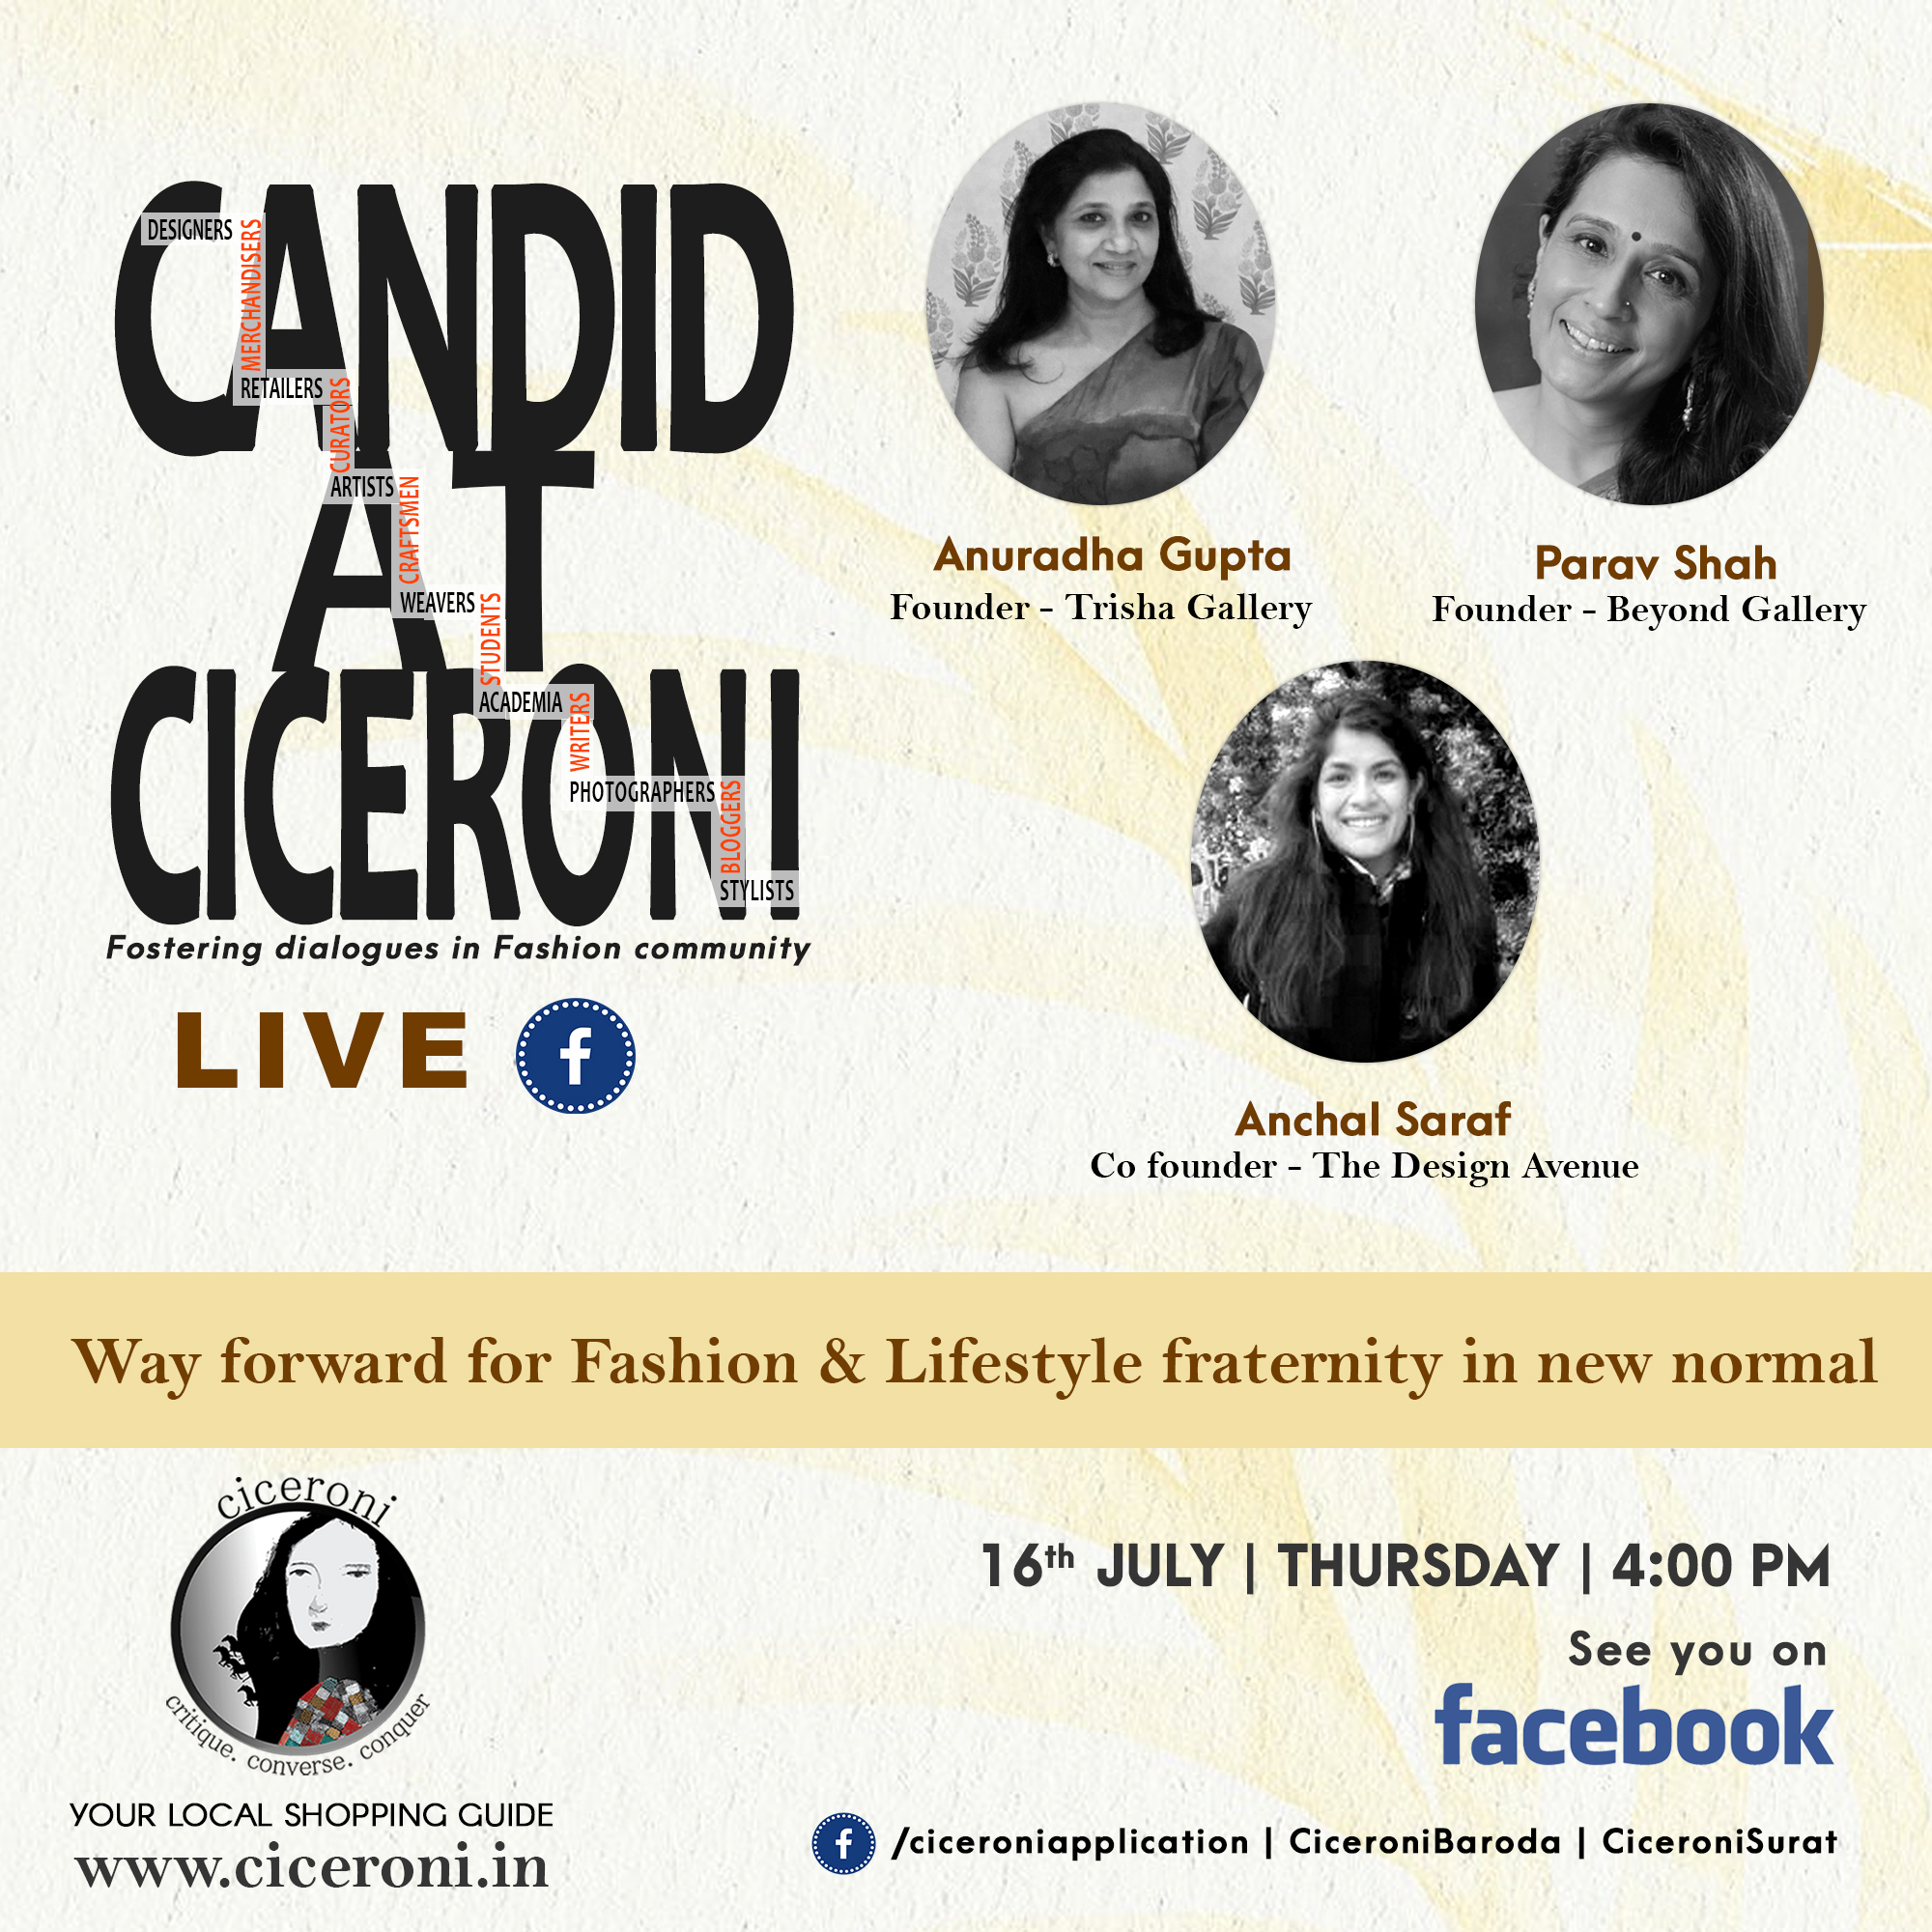 ciceroni -fashion business – future of fashion – business of fashion – Candid at Ciceroni Live – Candid at Ciceroni – Ciceroni Live – Panel discussion on  Ciceroni -Digital Media – Physical Presence – Retail stores – Instagram – Facebook – Digital Marketing – Online marketing – Online Shopping – E-commerce – Shopping online – Beyond Gallery Ahmedabad – The Design Avenue Surat – Trisha Gallery Baroda – Baroda – Surat – Ahmedabad – Fashion and Lifestyle Brands – Fashion Brands – Lifestyle Brands – luxury fashion – Shopping India – Indian Fashion Business